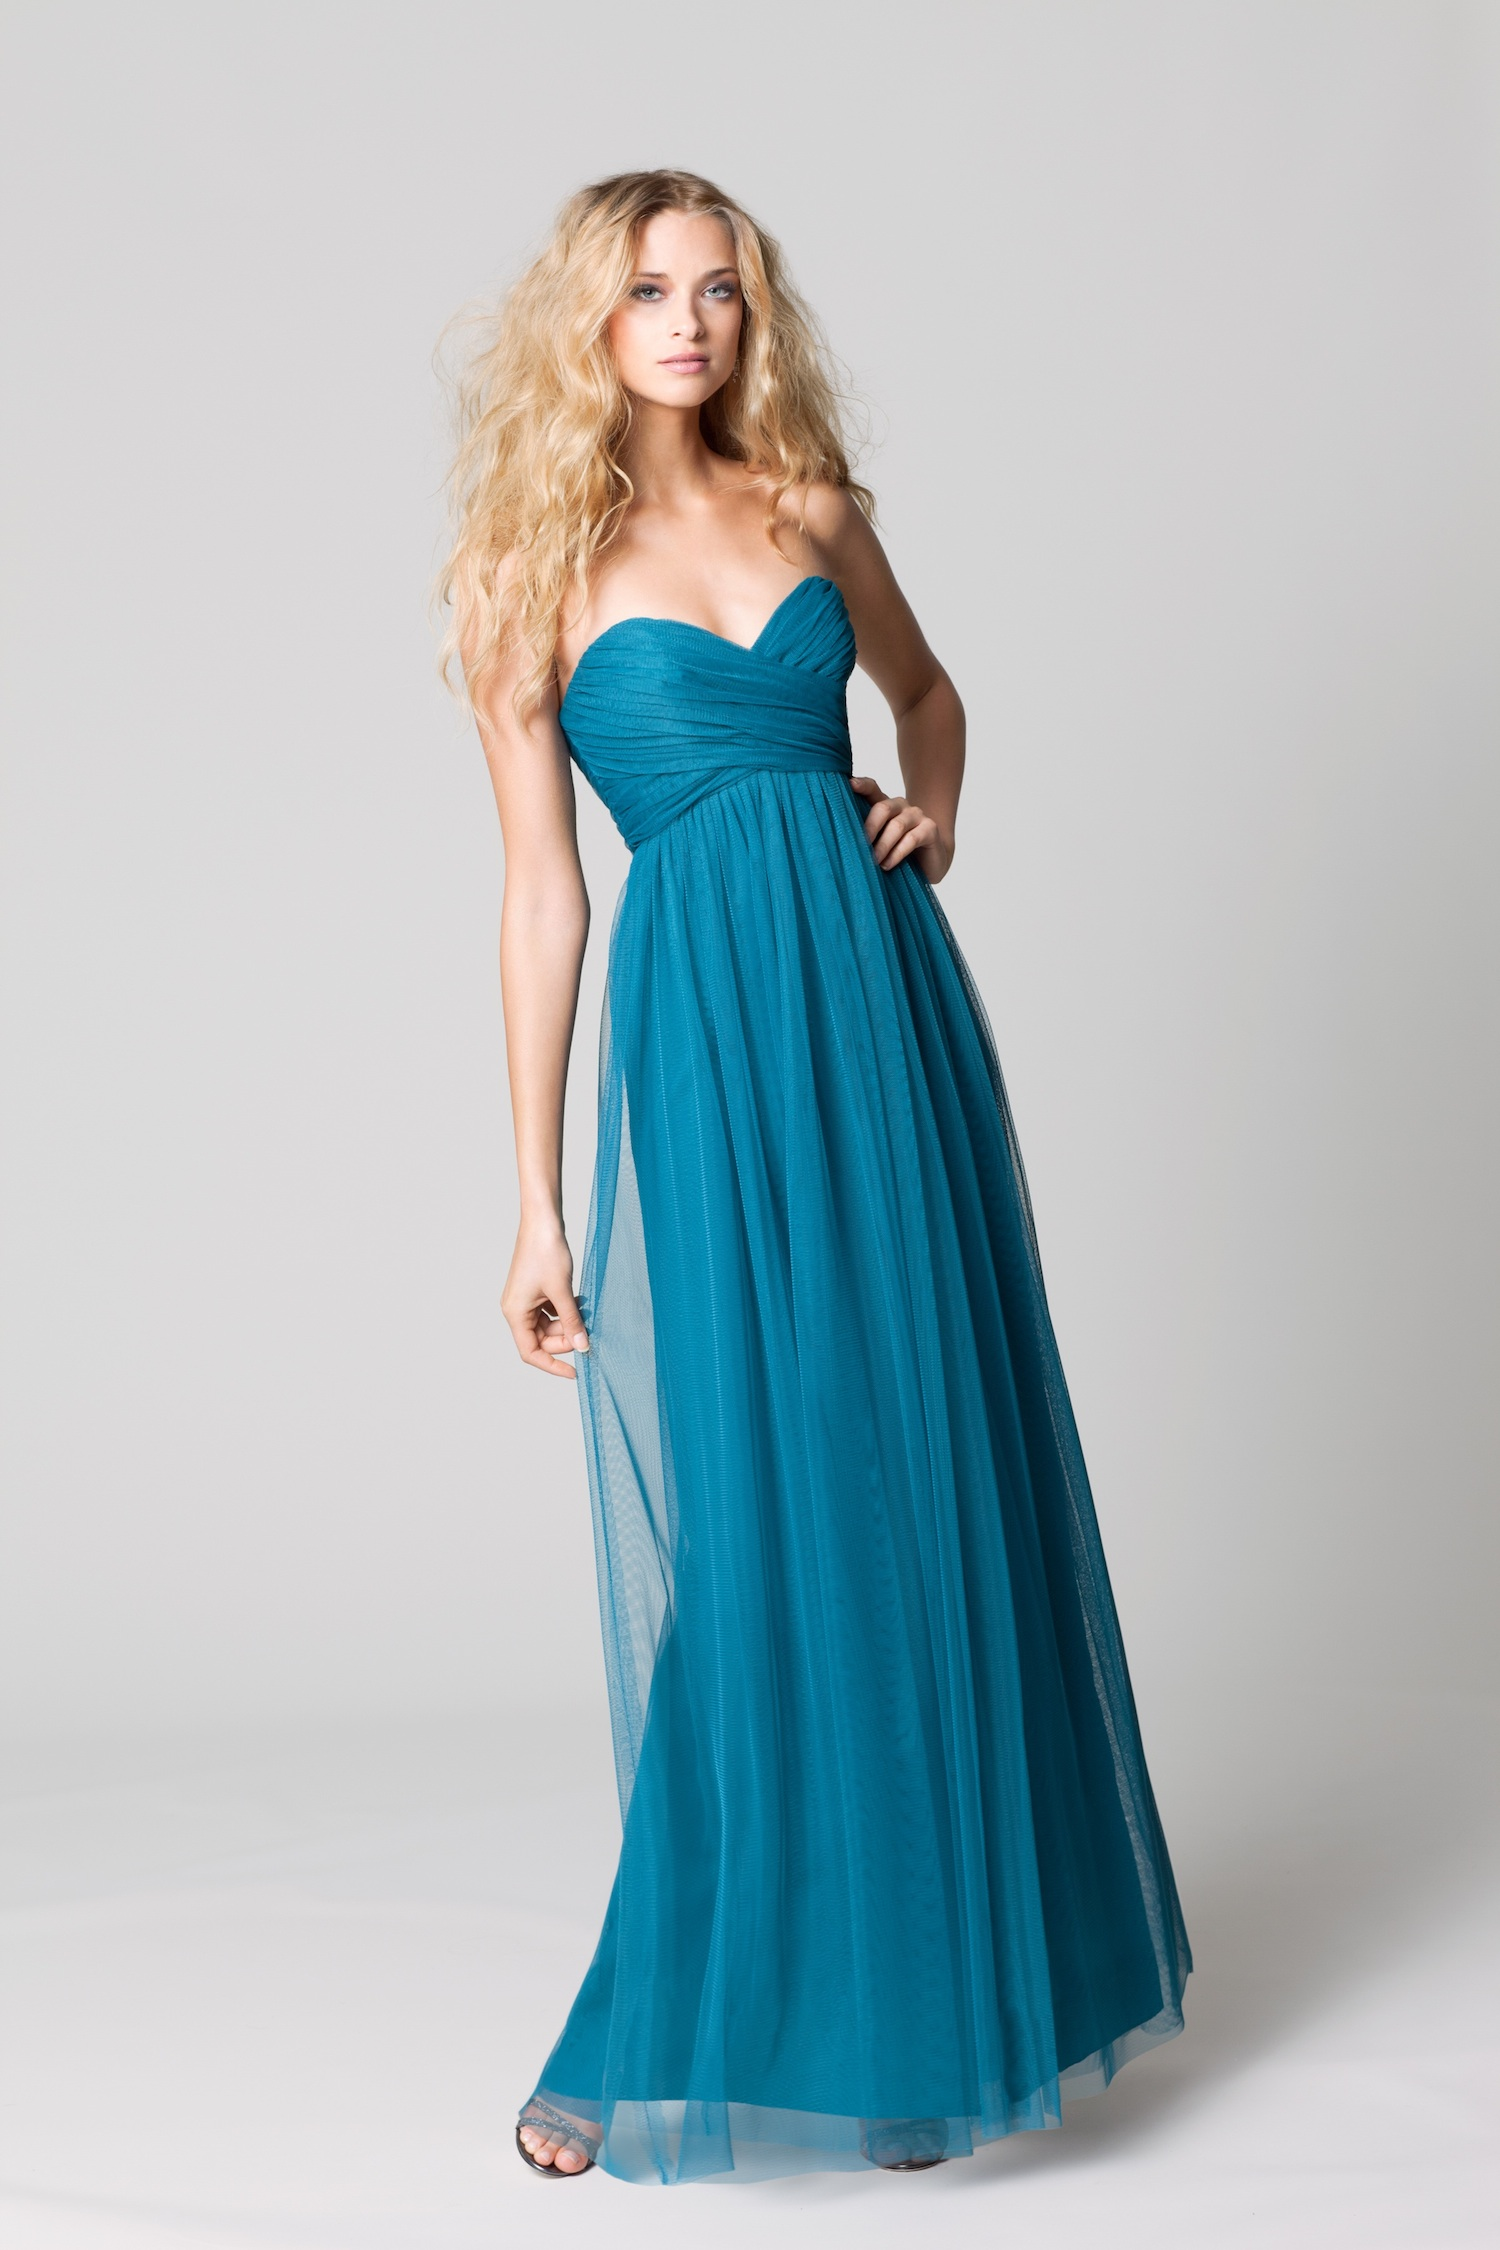 Bridesmaid Dresses Affordable